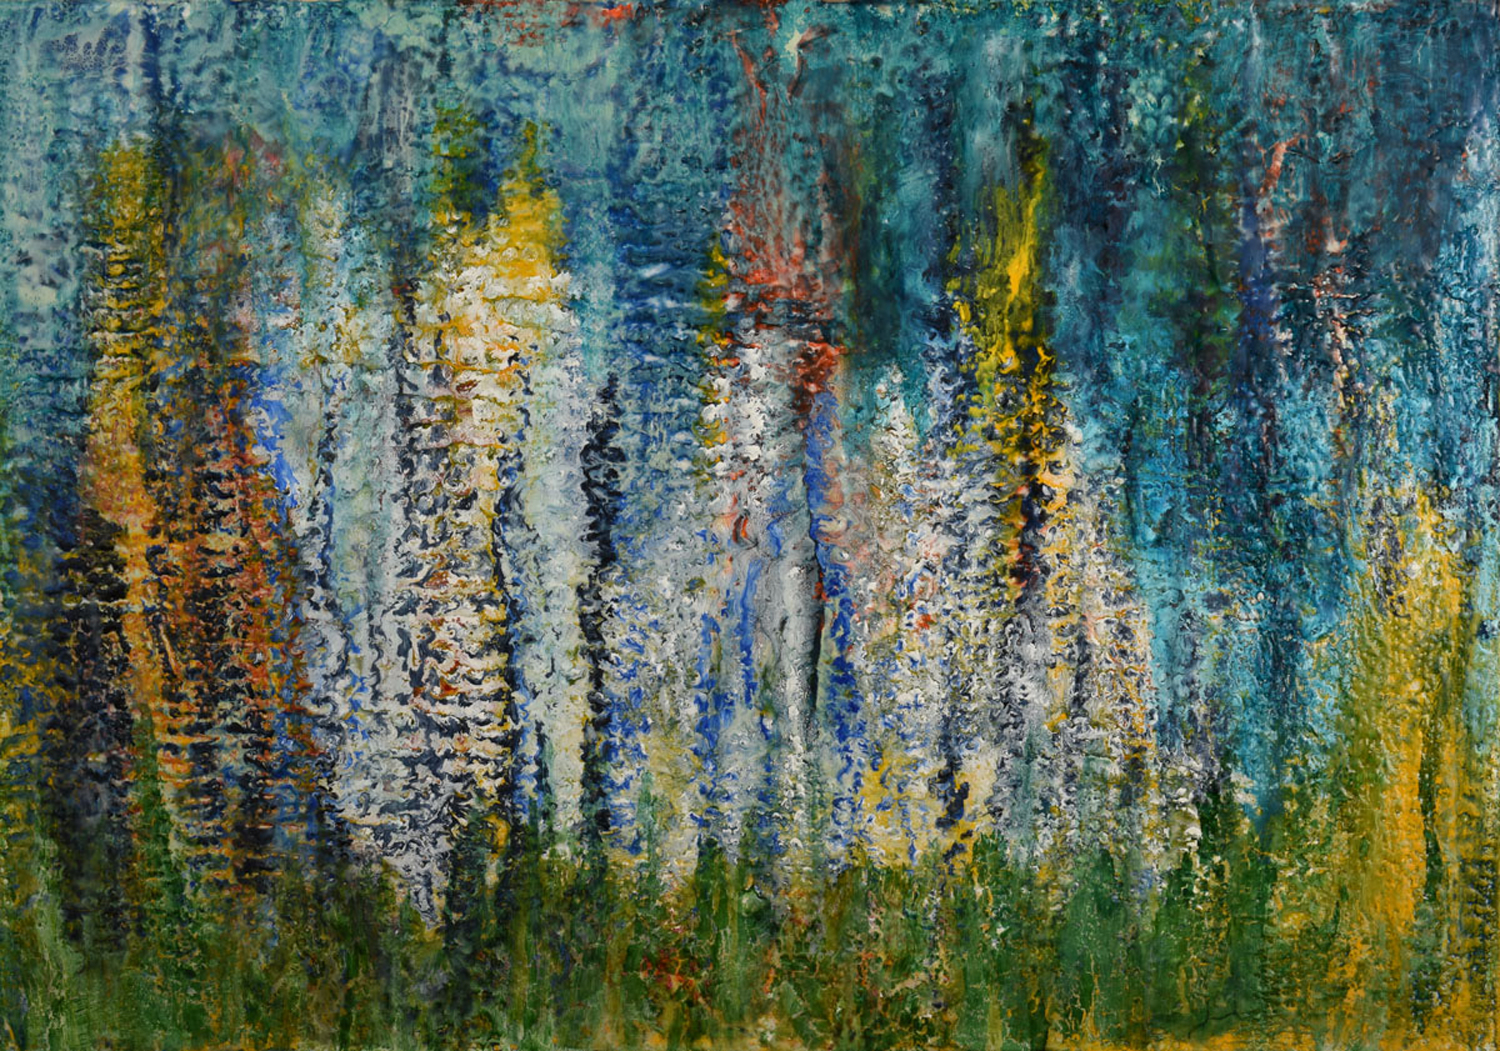 Forest's_Edge_painting_by_Vibha_Nanda-compressor